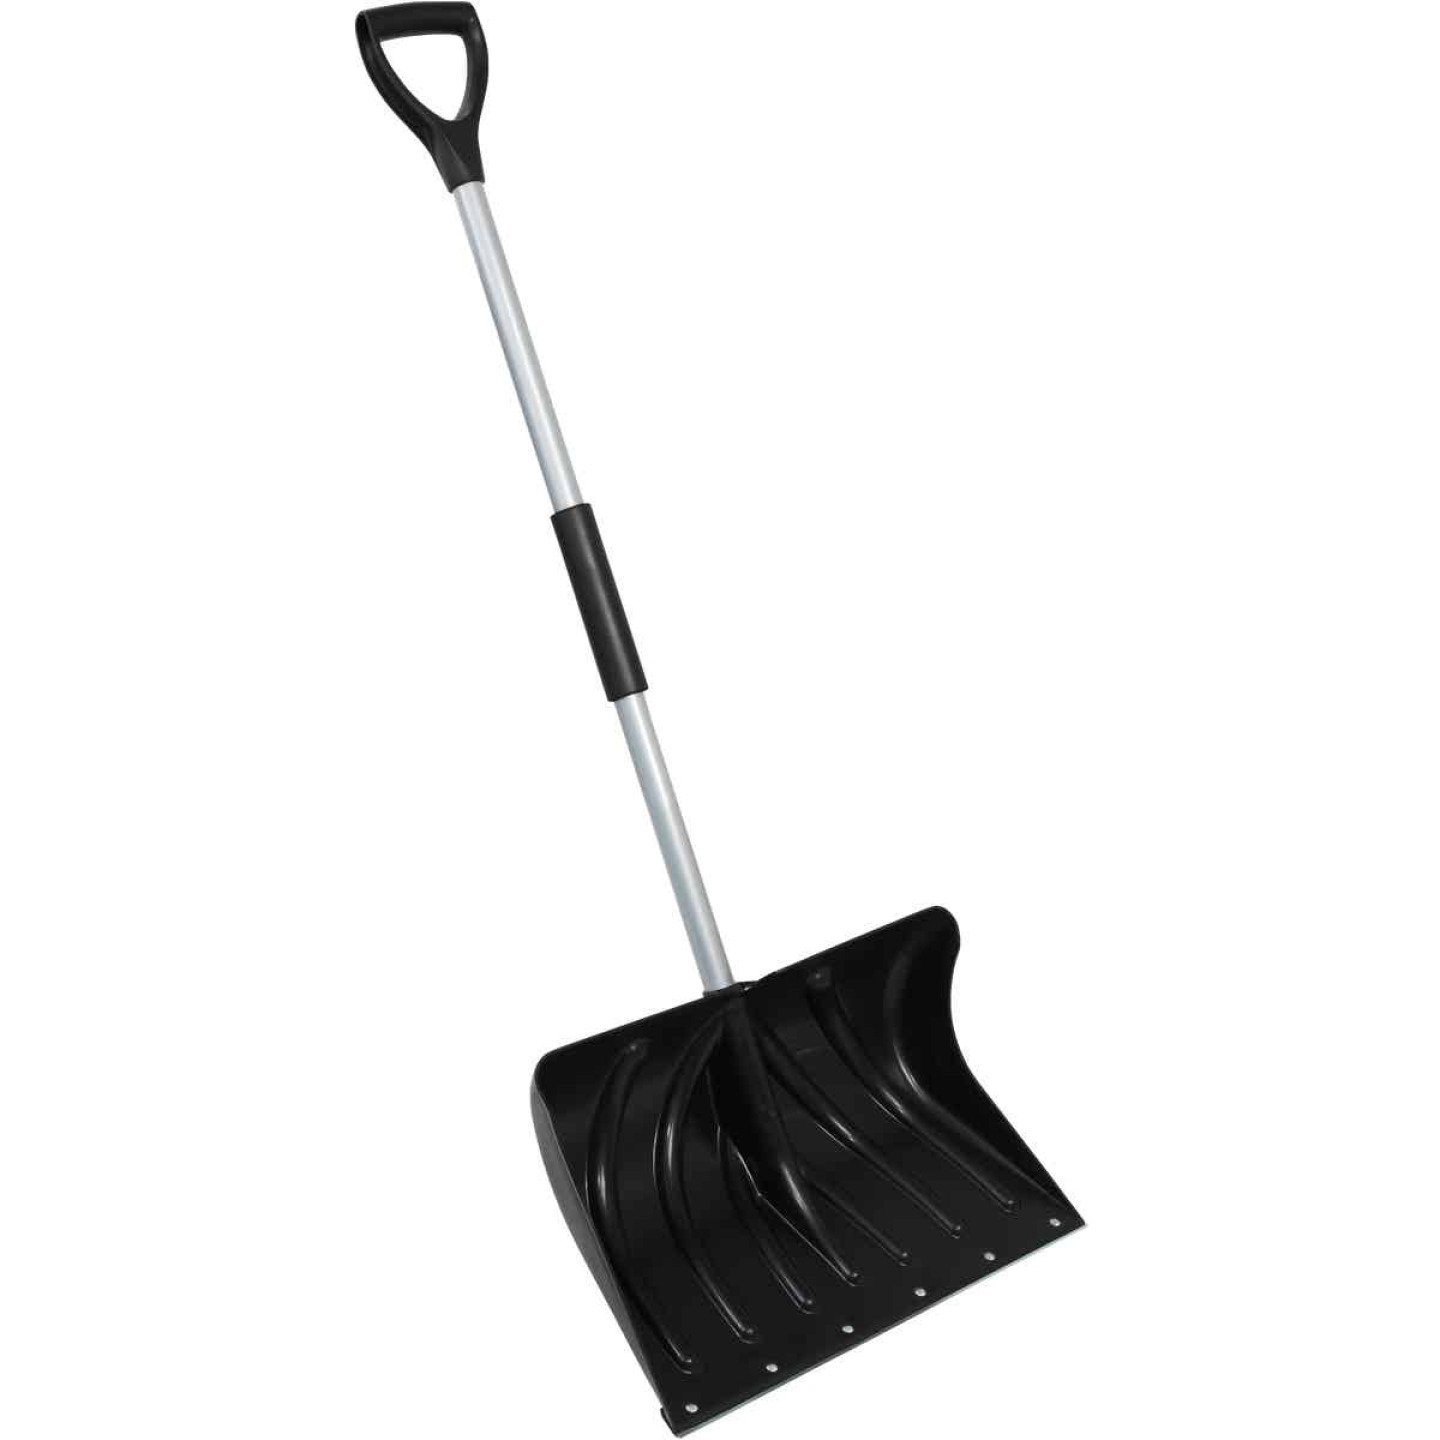 20 In. Poly Snow Shovel with 38 In. Steel Handle Image 1